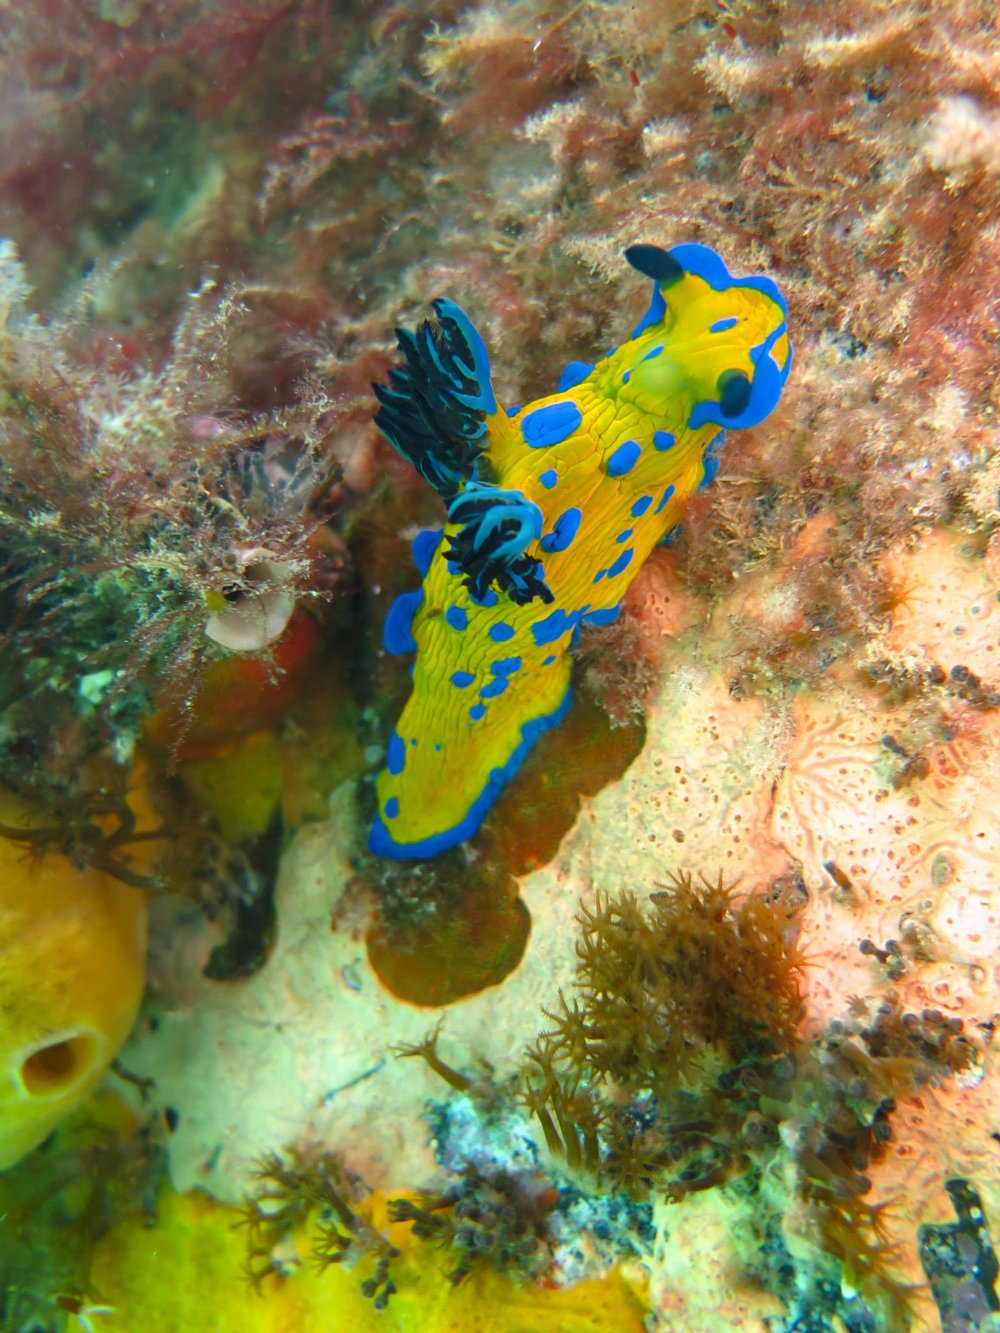 Verco's nudibranch.  Image: Cathy Cavallo